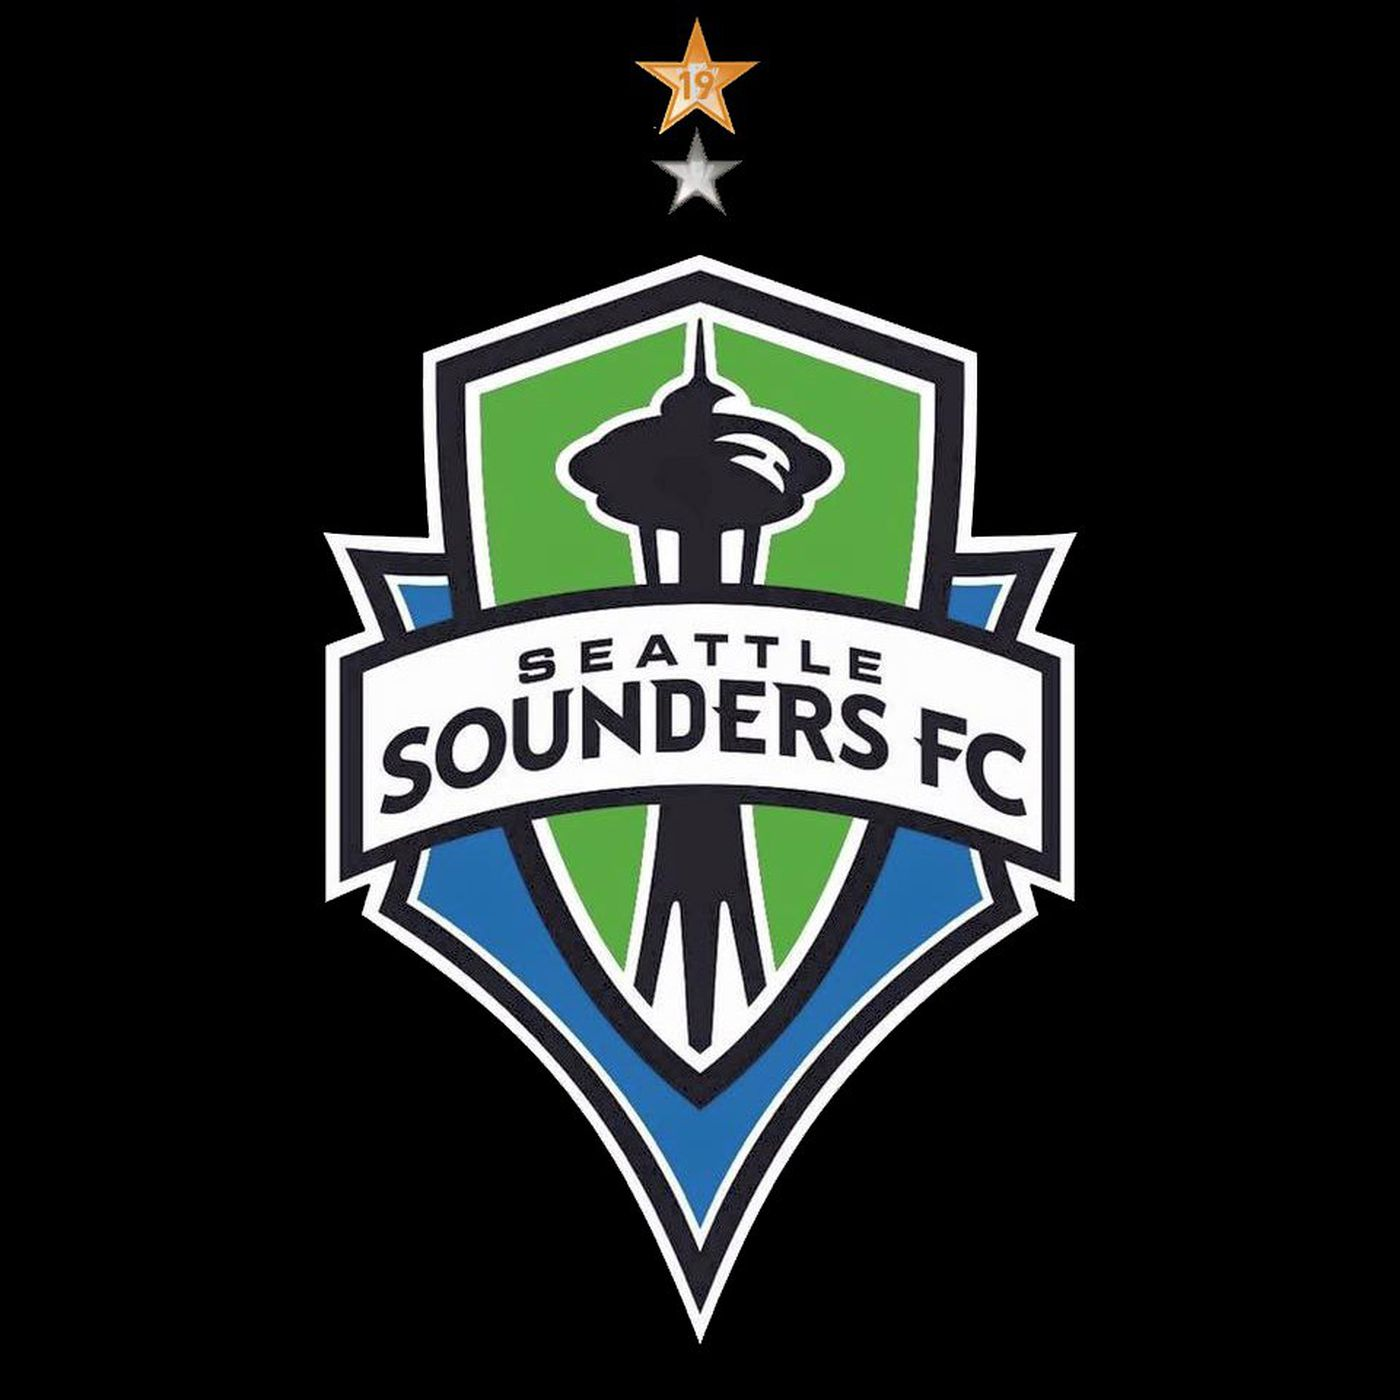 Here\'s what the Sounders badge will look like with two stars.